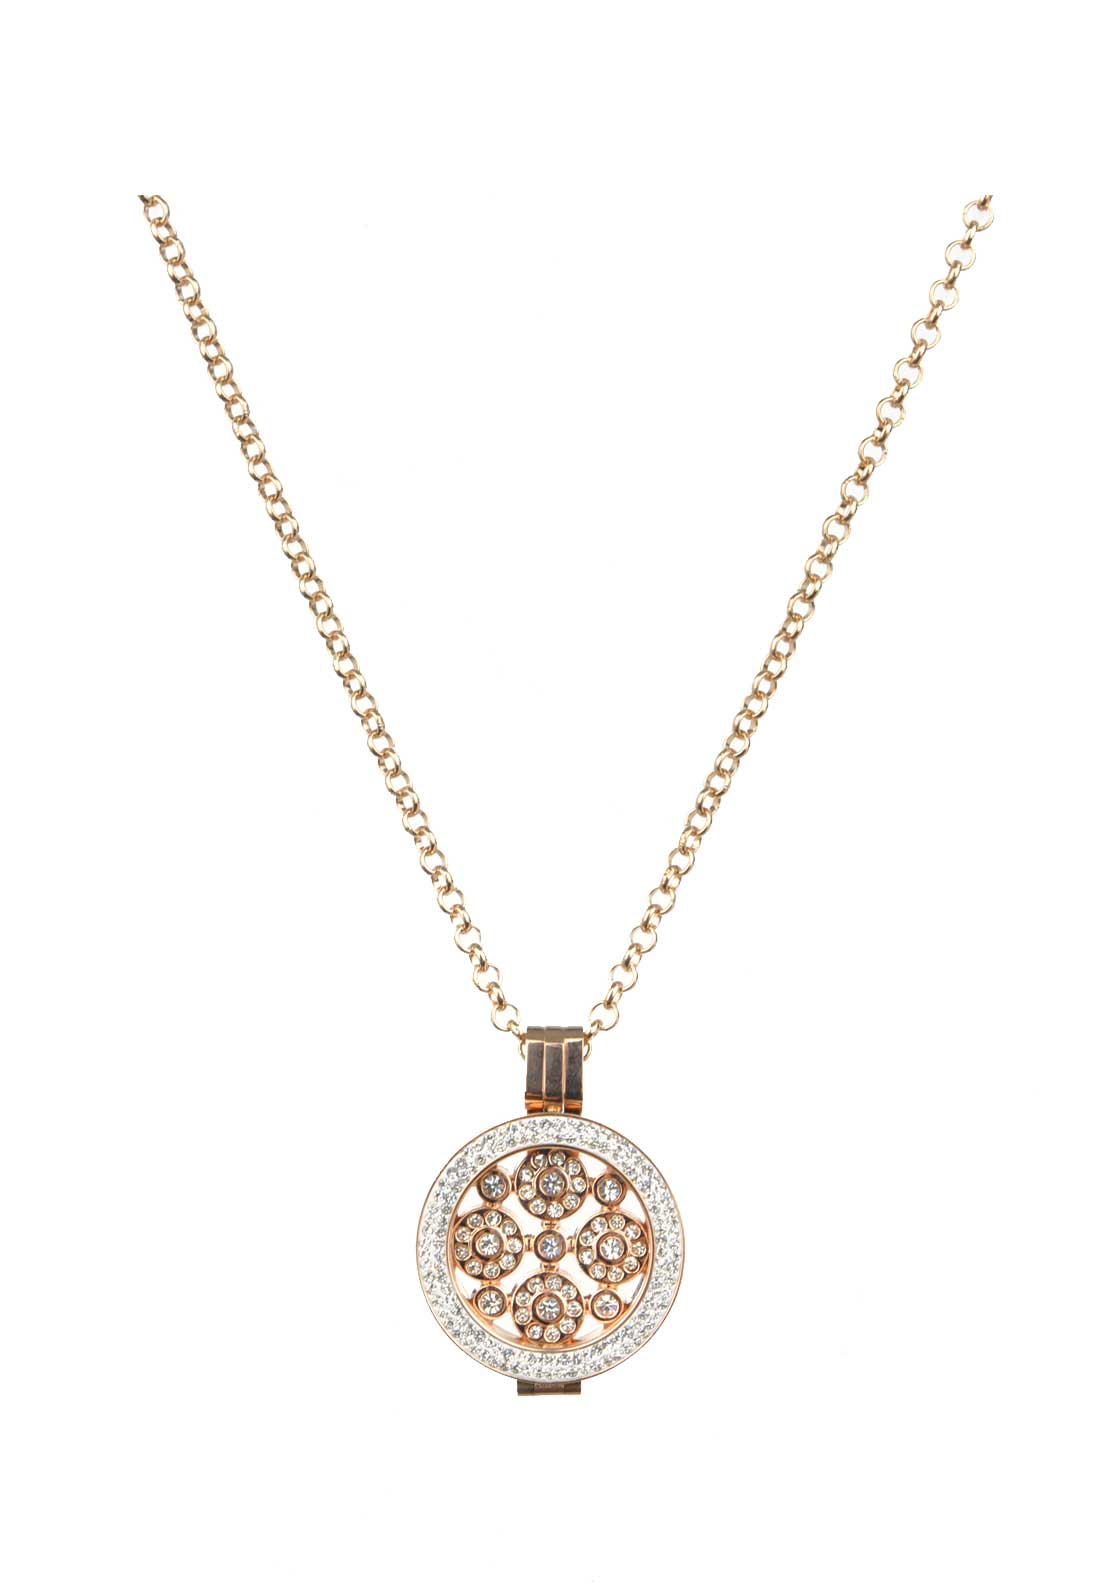 Absolute Jewellery Small Circles Pattern Pendant and Chain, Rose Gold